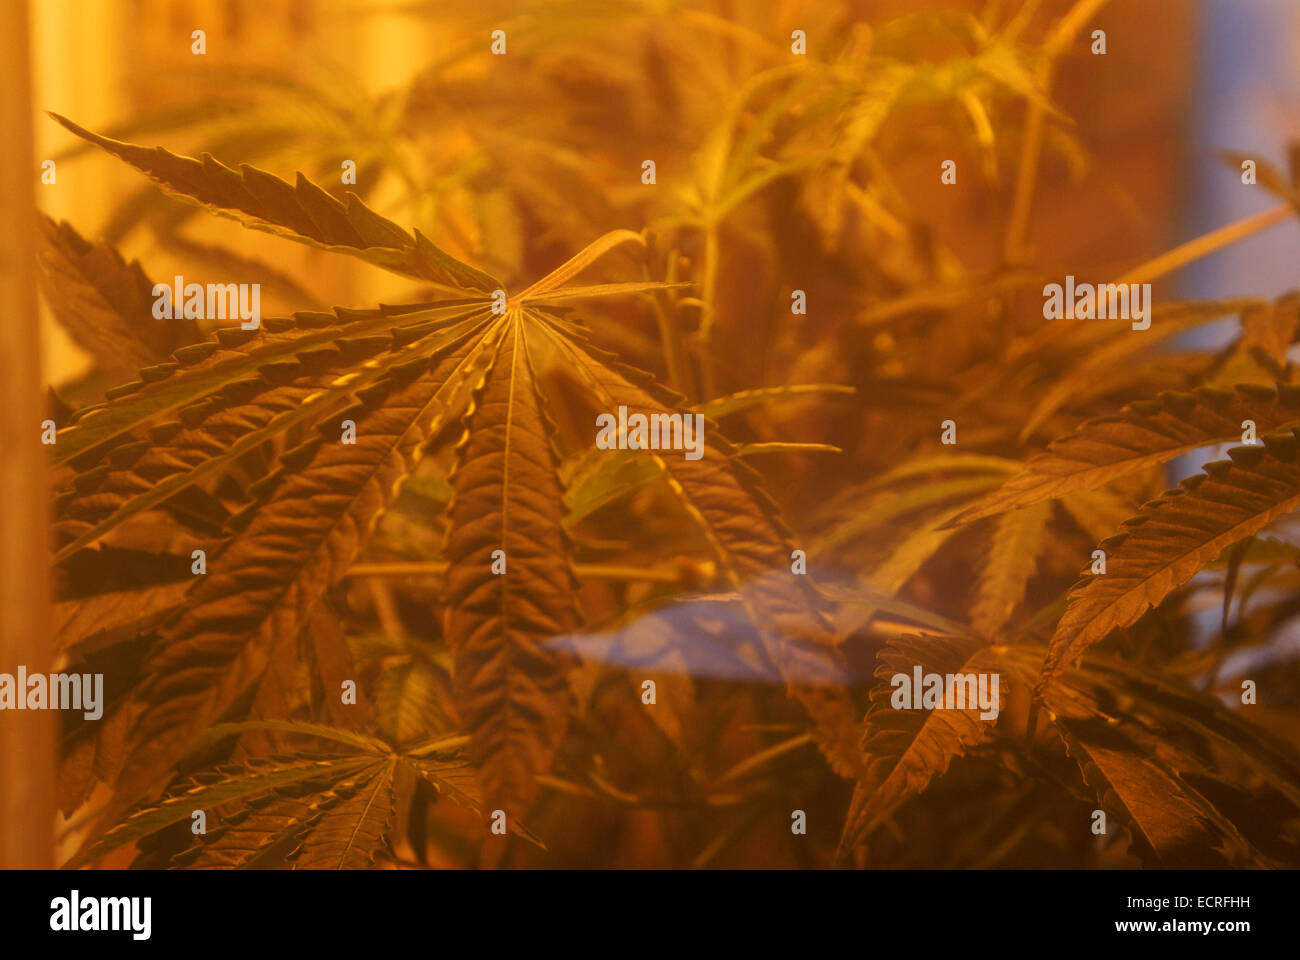 A cannabis leaf photographed through a window in Amsterdam - Stock Image